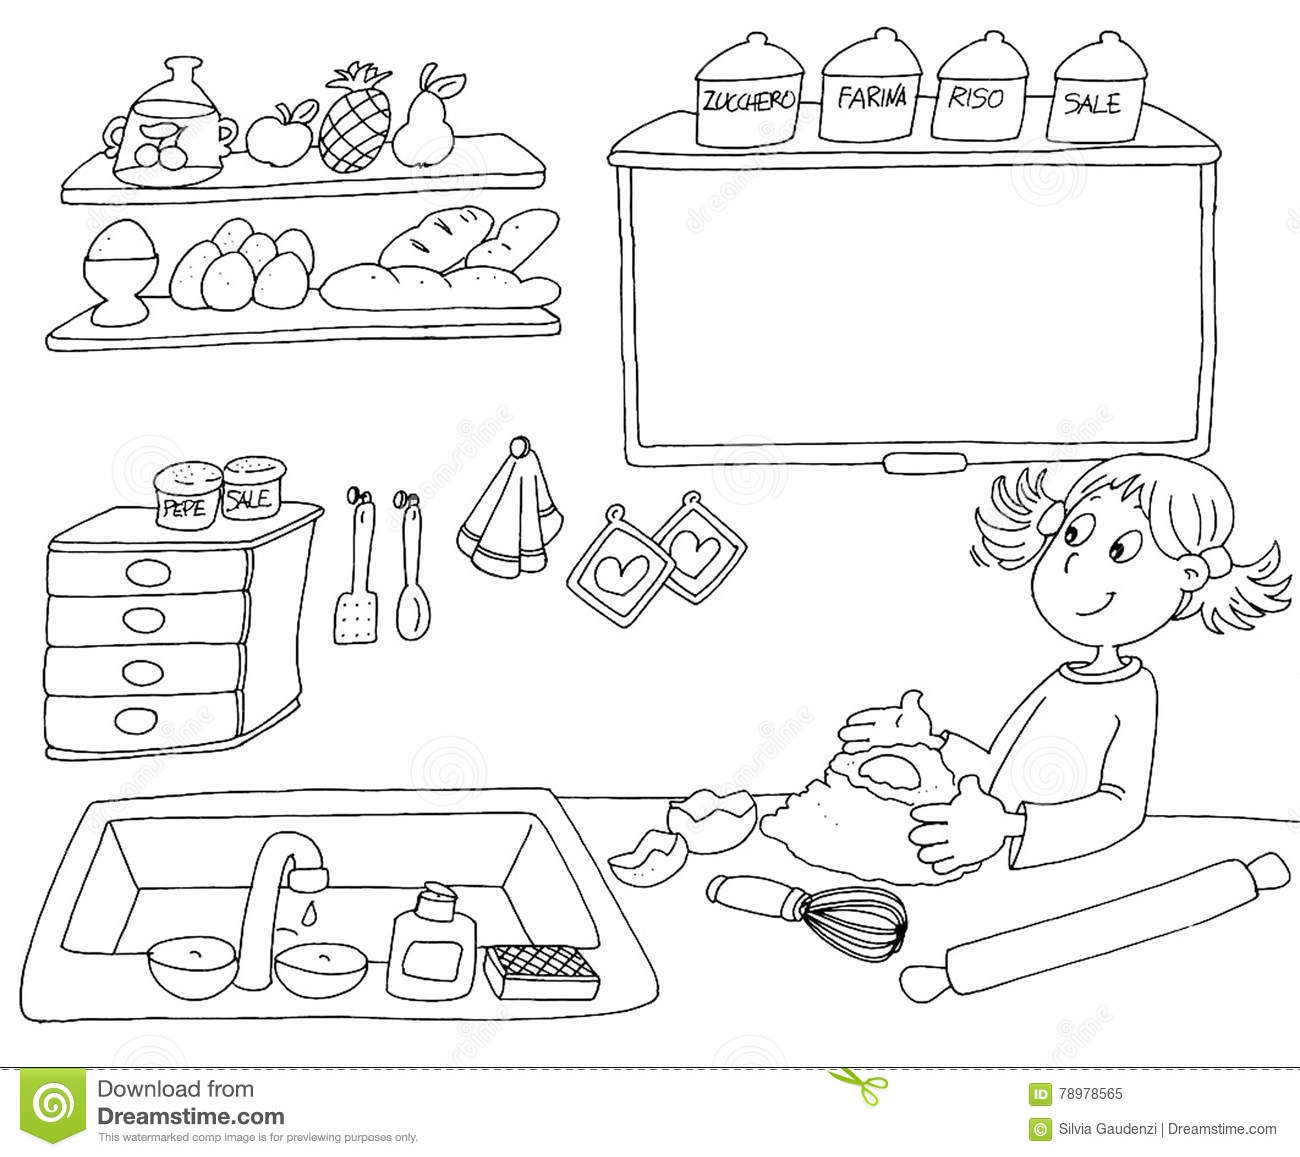 Coloring book kitchen - Boards Books Cake Chine Coloring Girl Kids Kitchen